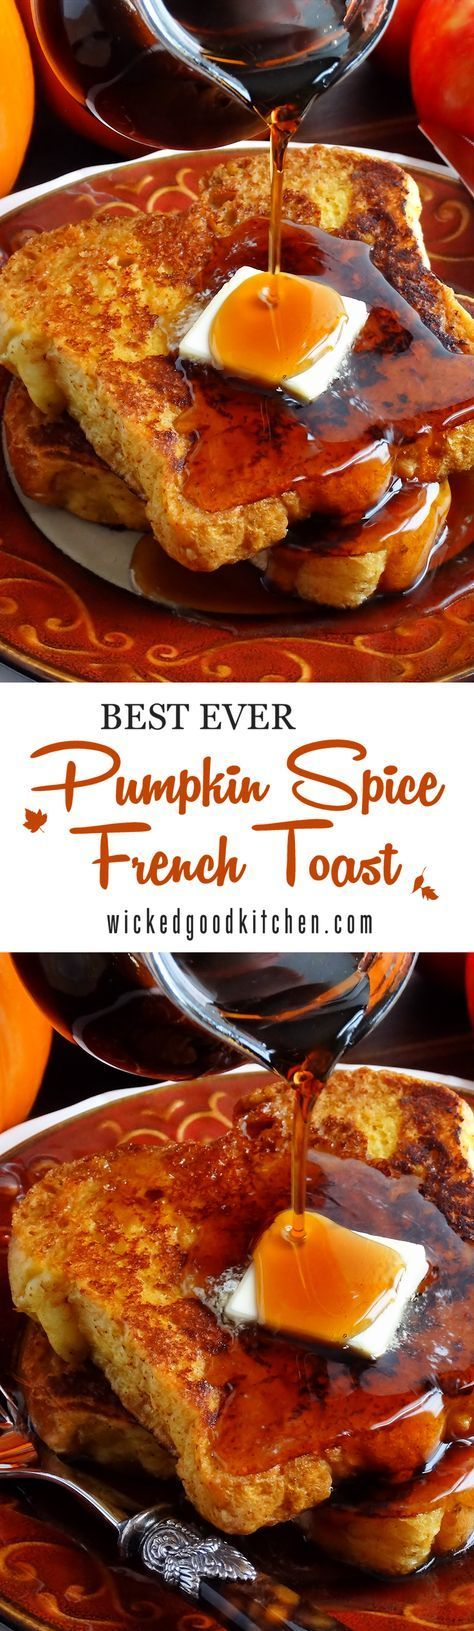 Crazy good yet distinctive, this Pumpkin French Toast will knock your socks off. It is made with Trader Joe's style homemade, quick and easy pumpkin butter! Perfect for weekend mornings and holidays—not just during the Fall! | breakfast brunch recipe (Holiday Bake Christmas)